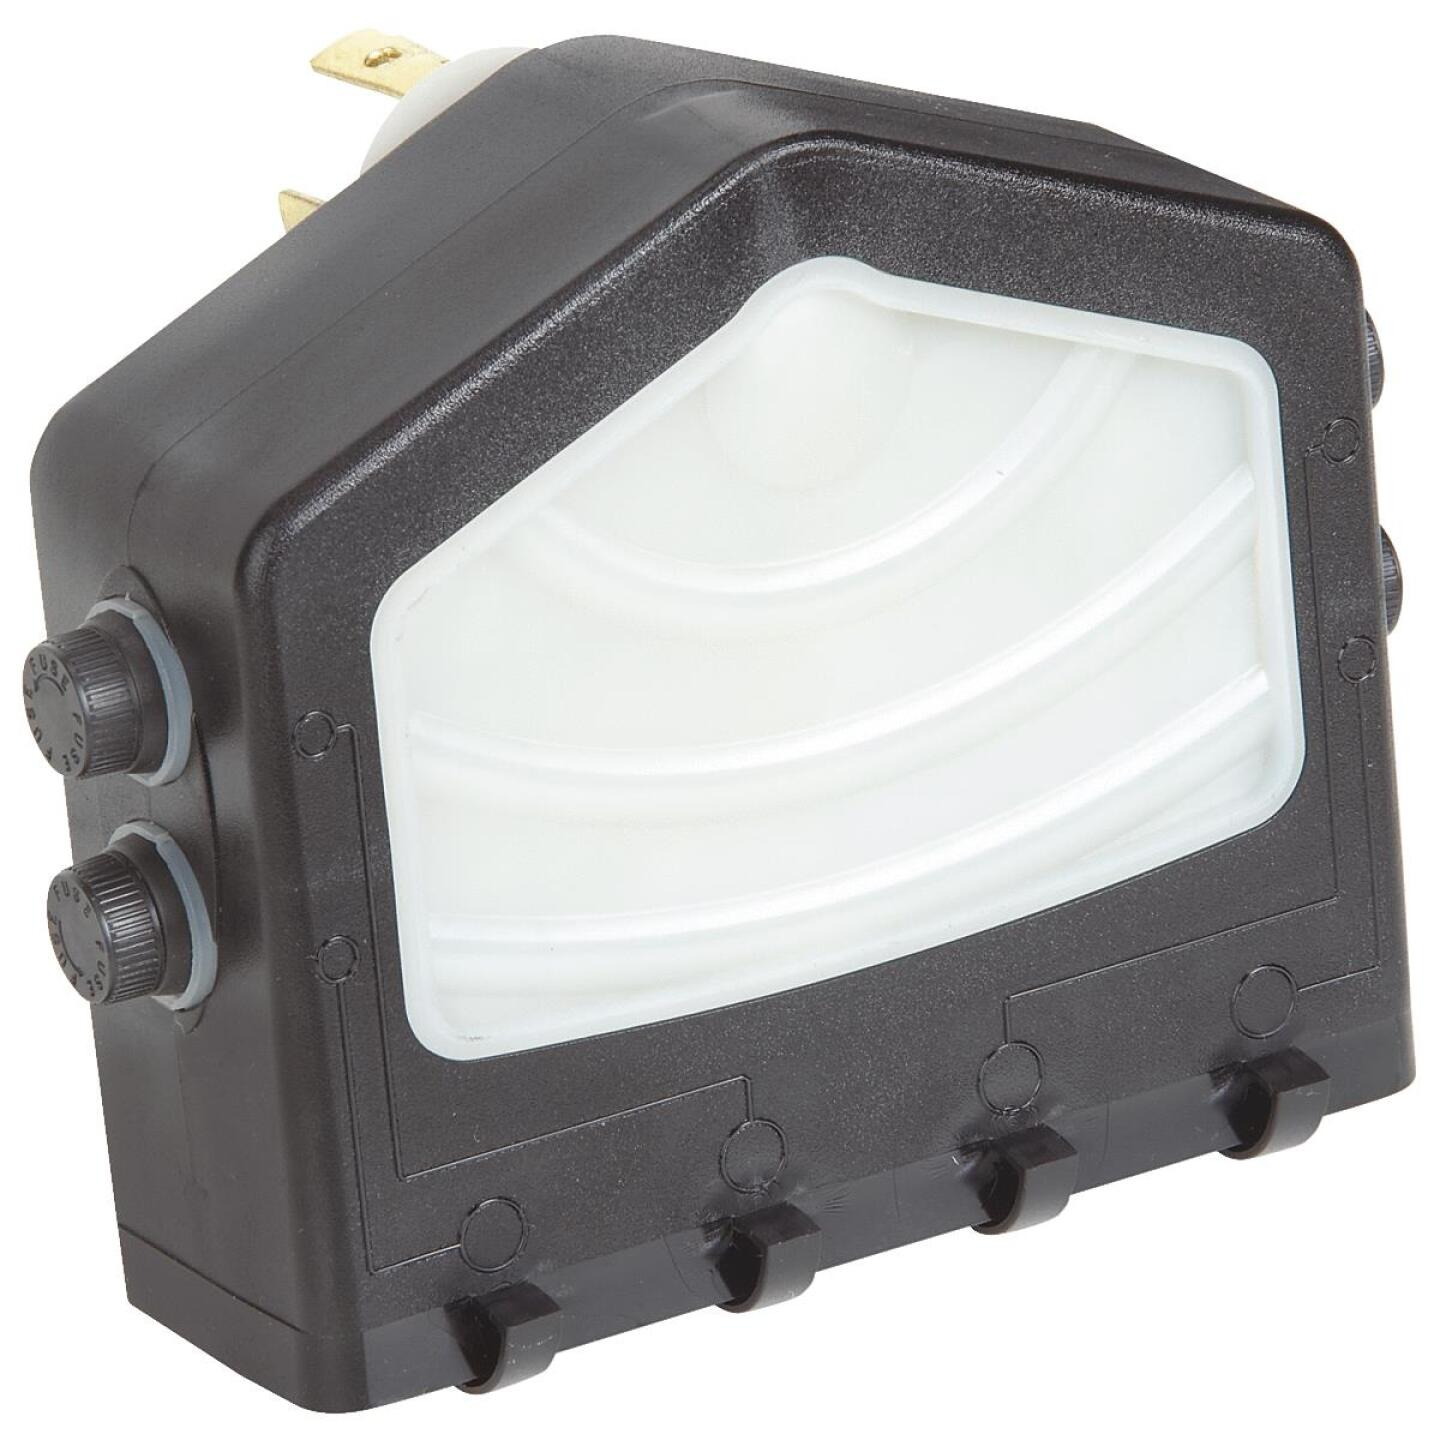 Do it 4-Outlet 30A/250V Generator Adapter Image 1